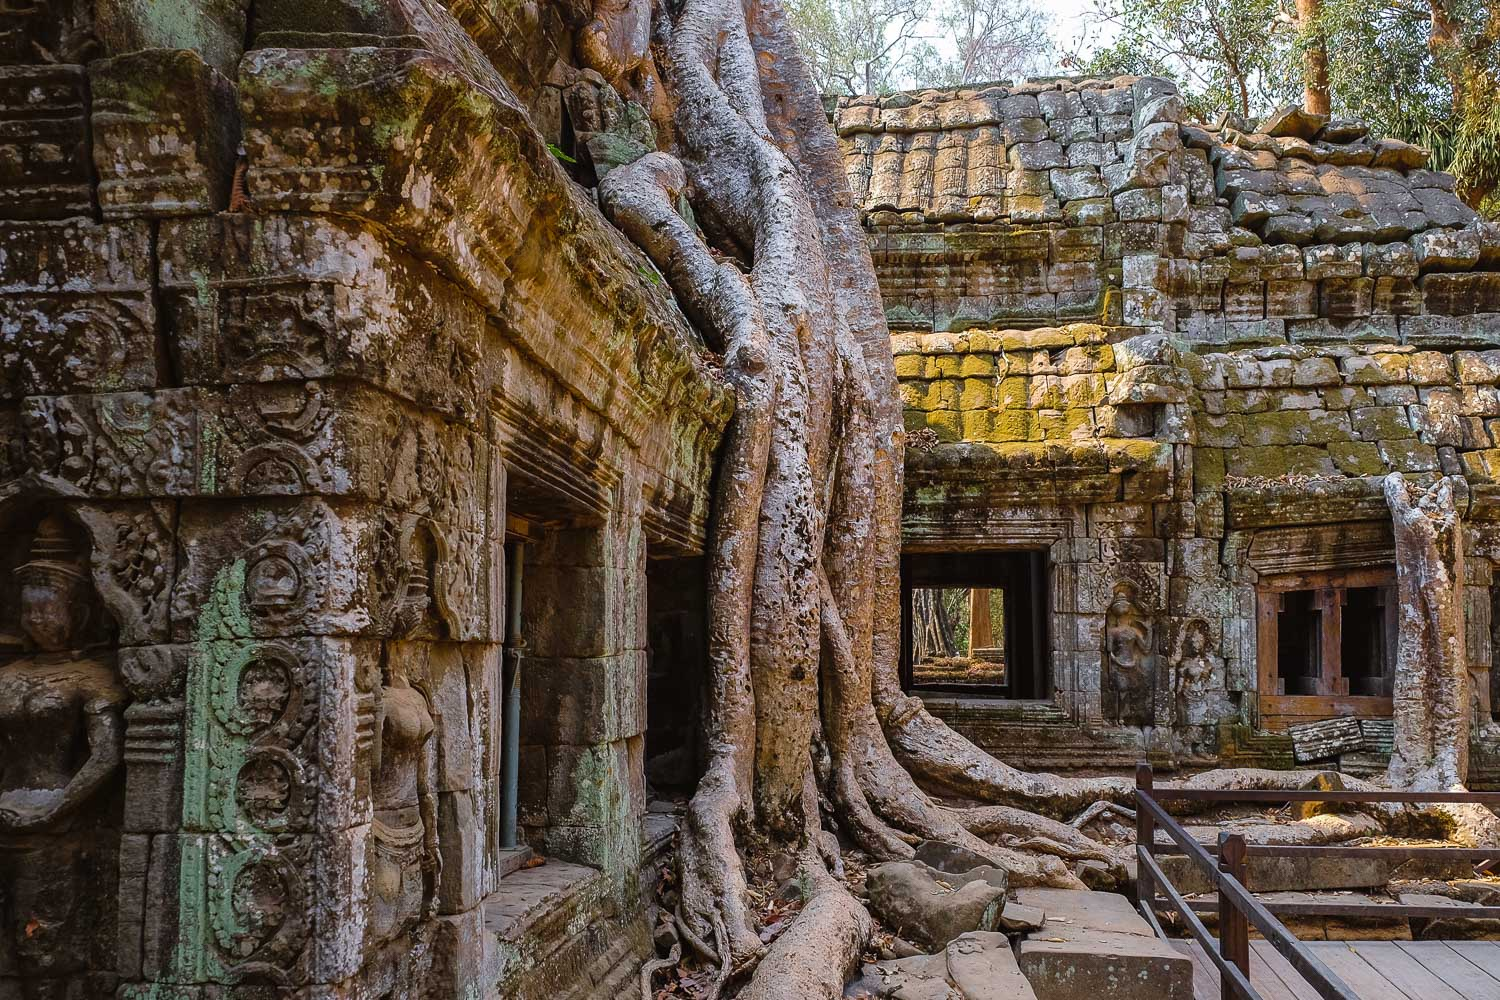 Spend 2 days exploring ancient temples and the backcountry of Siem Reap with two amazing private tour guides. This travel guide includes highlights with tips and photo galleries. #siemreap #angkorwat #taprohm #travelguide #travelblog #travelitinerary #itinerary #siemreapitinerary #seasia #cambodia #travelcambodia #travelsiemreap #photoblog #travelblogger #travelphotography #landscapephotography #fujifilm #temples #siemreapprivatetour #atv